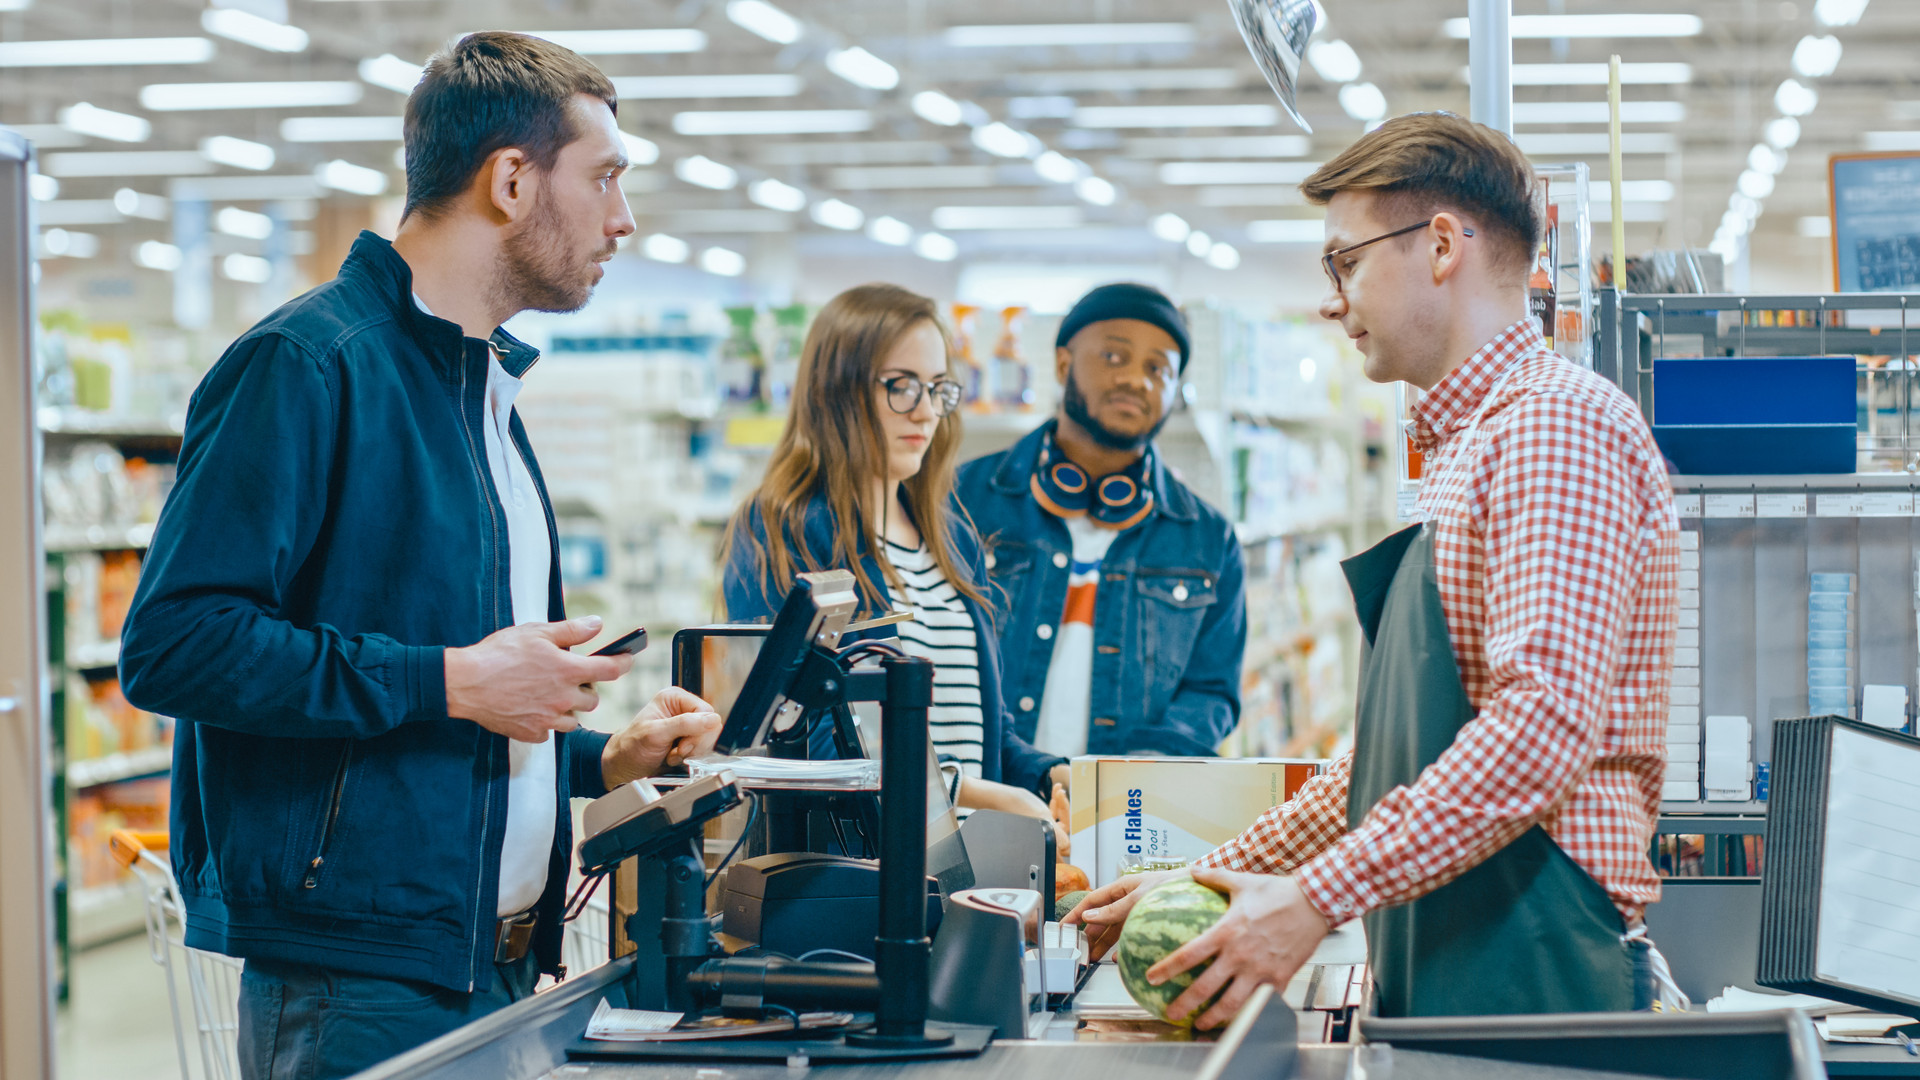 At the Supermarket: Checkout Counter Customer Pays with Smartphone for His Items. Big Shopping Mall with Friendly Cashier, Small Lines and Modern Wireless Paying Terminal System.